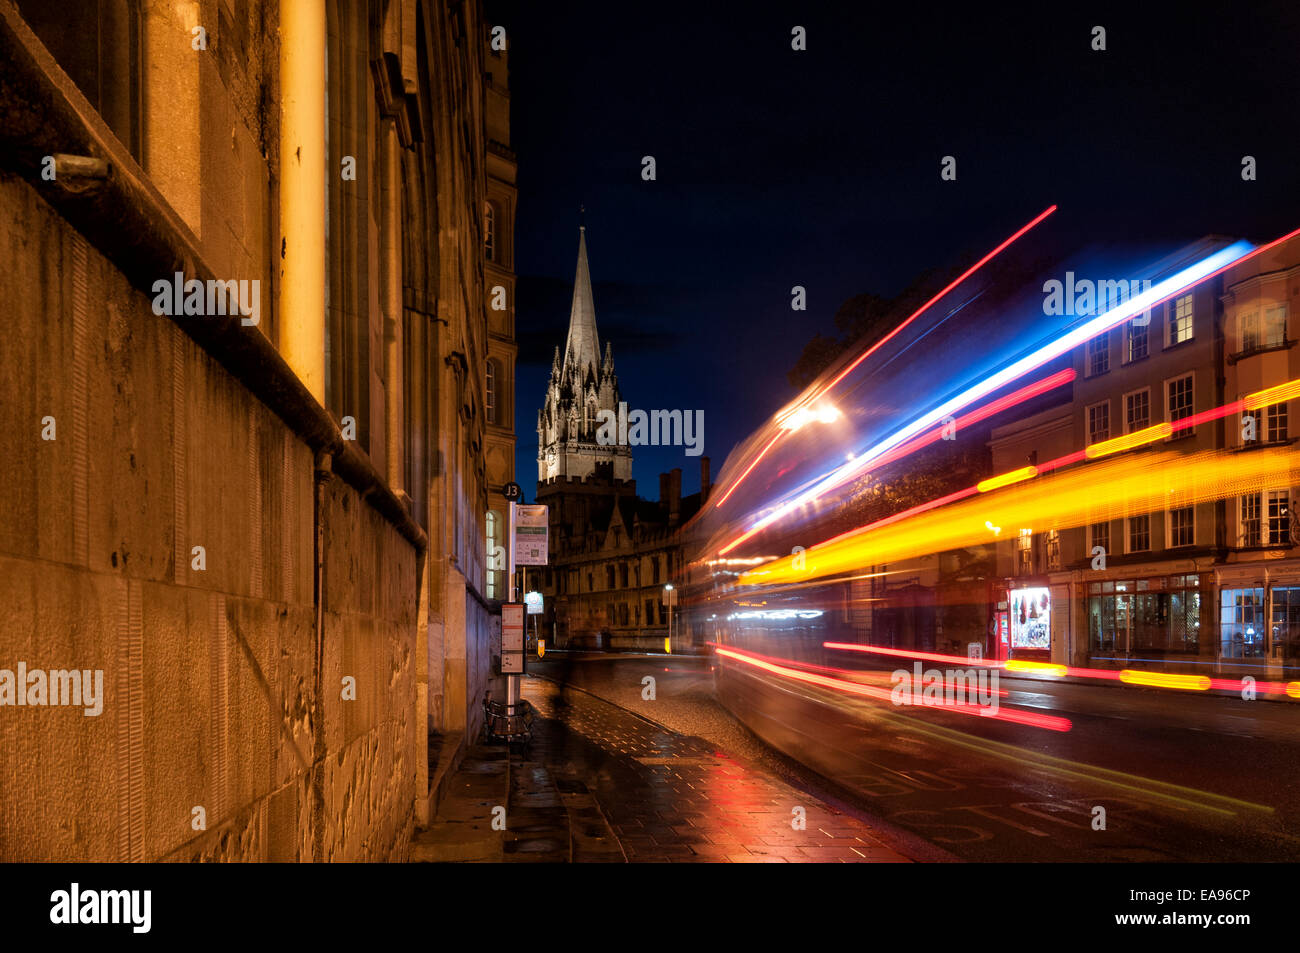 Oxford high street at night with streaks of light from a passing bus - Stock Image